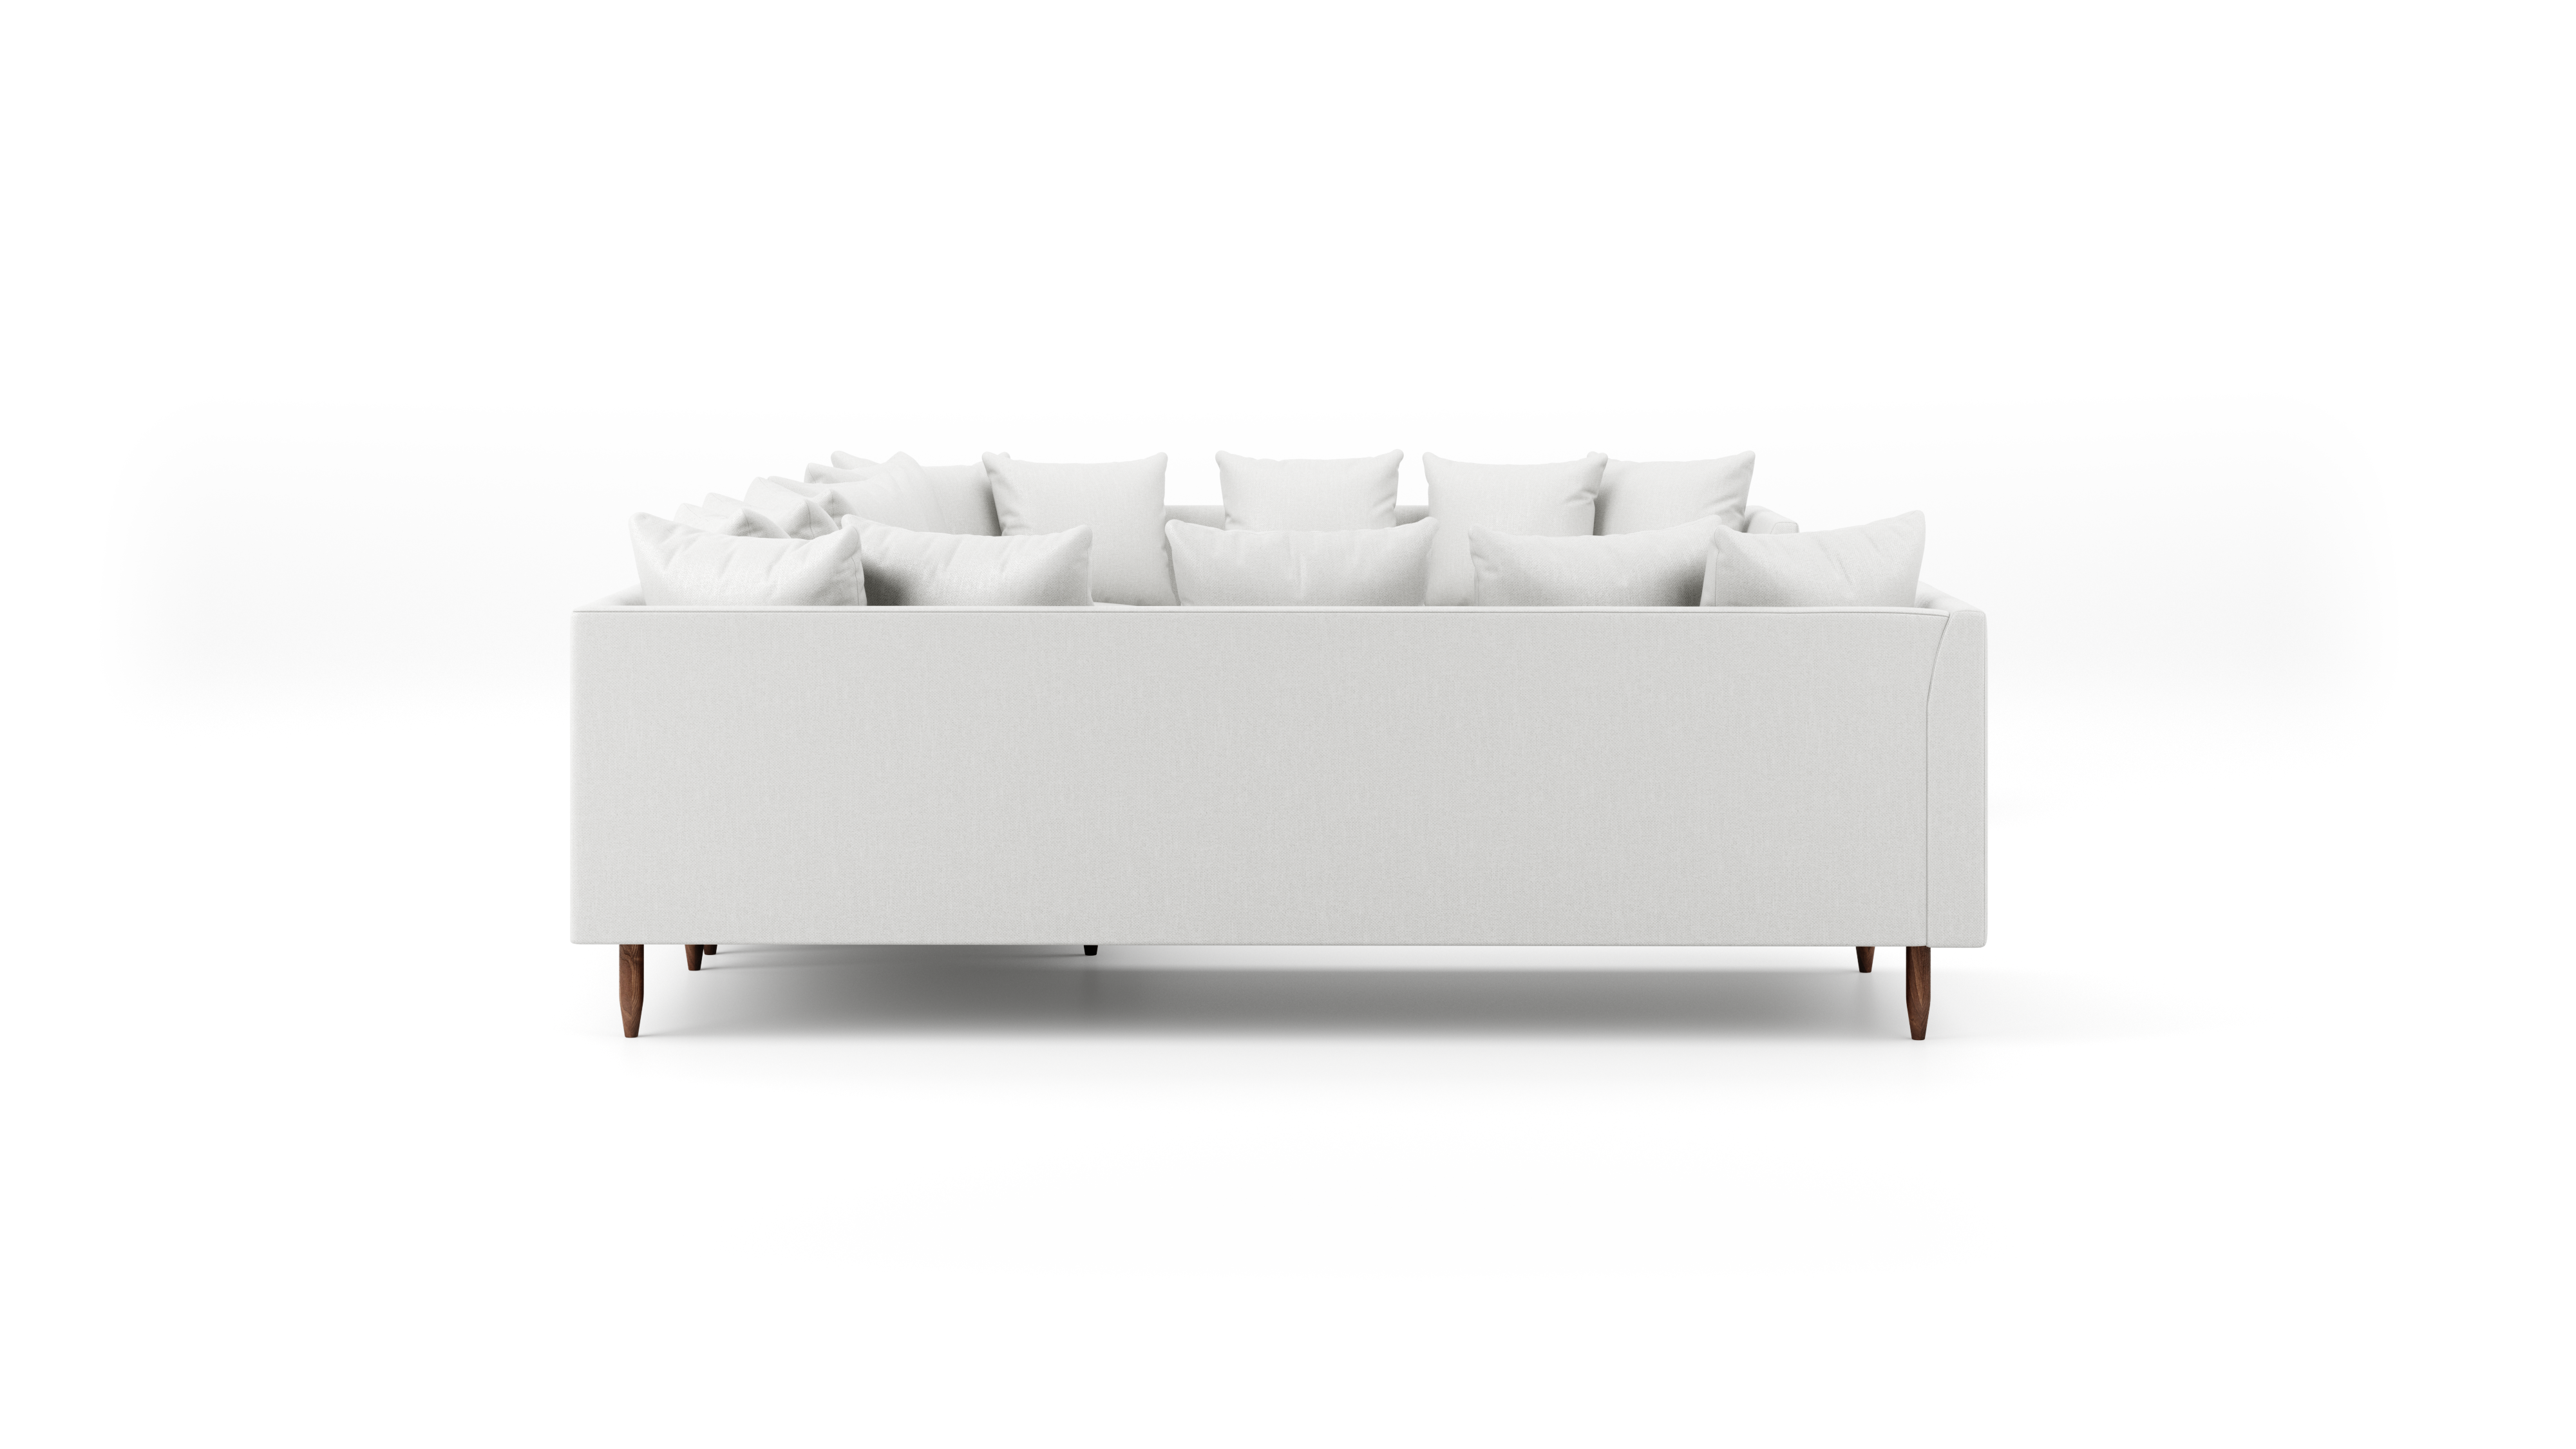 OG Crowd Pleaser U-Shaped Sectional